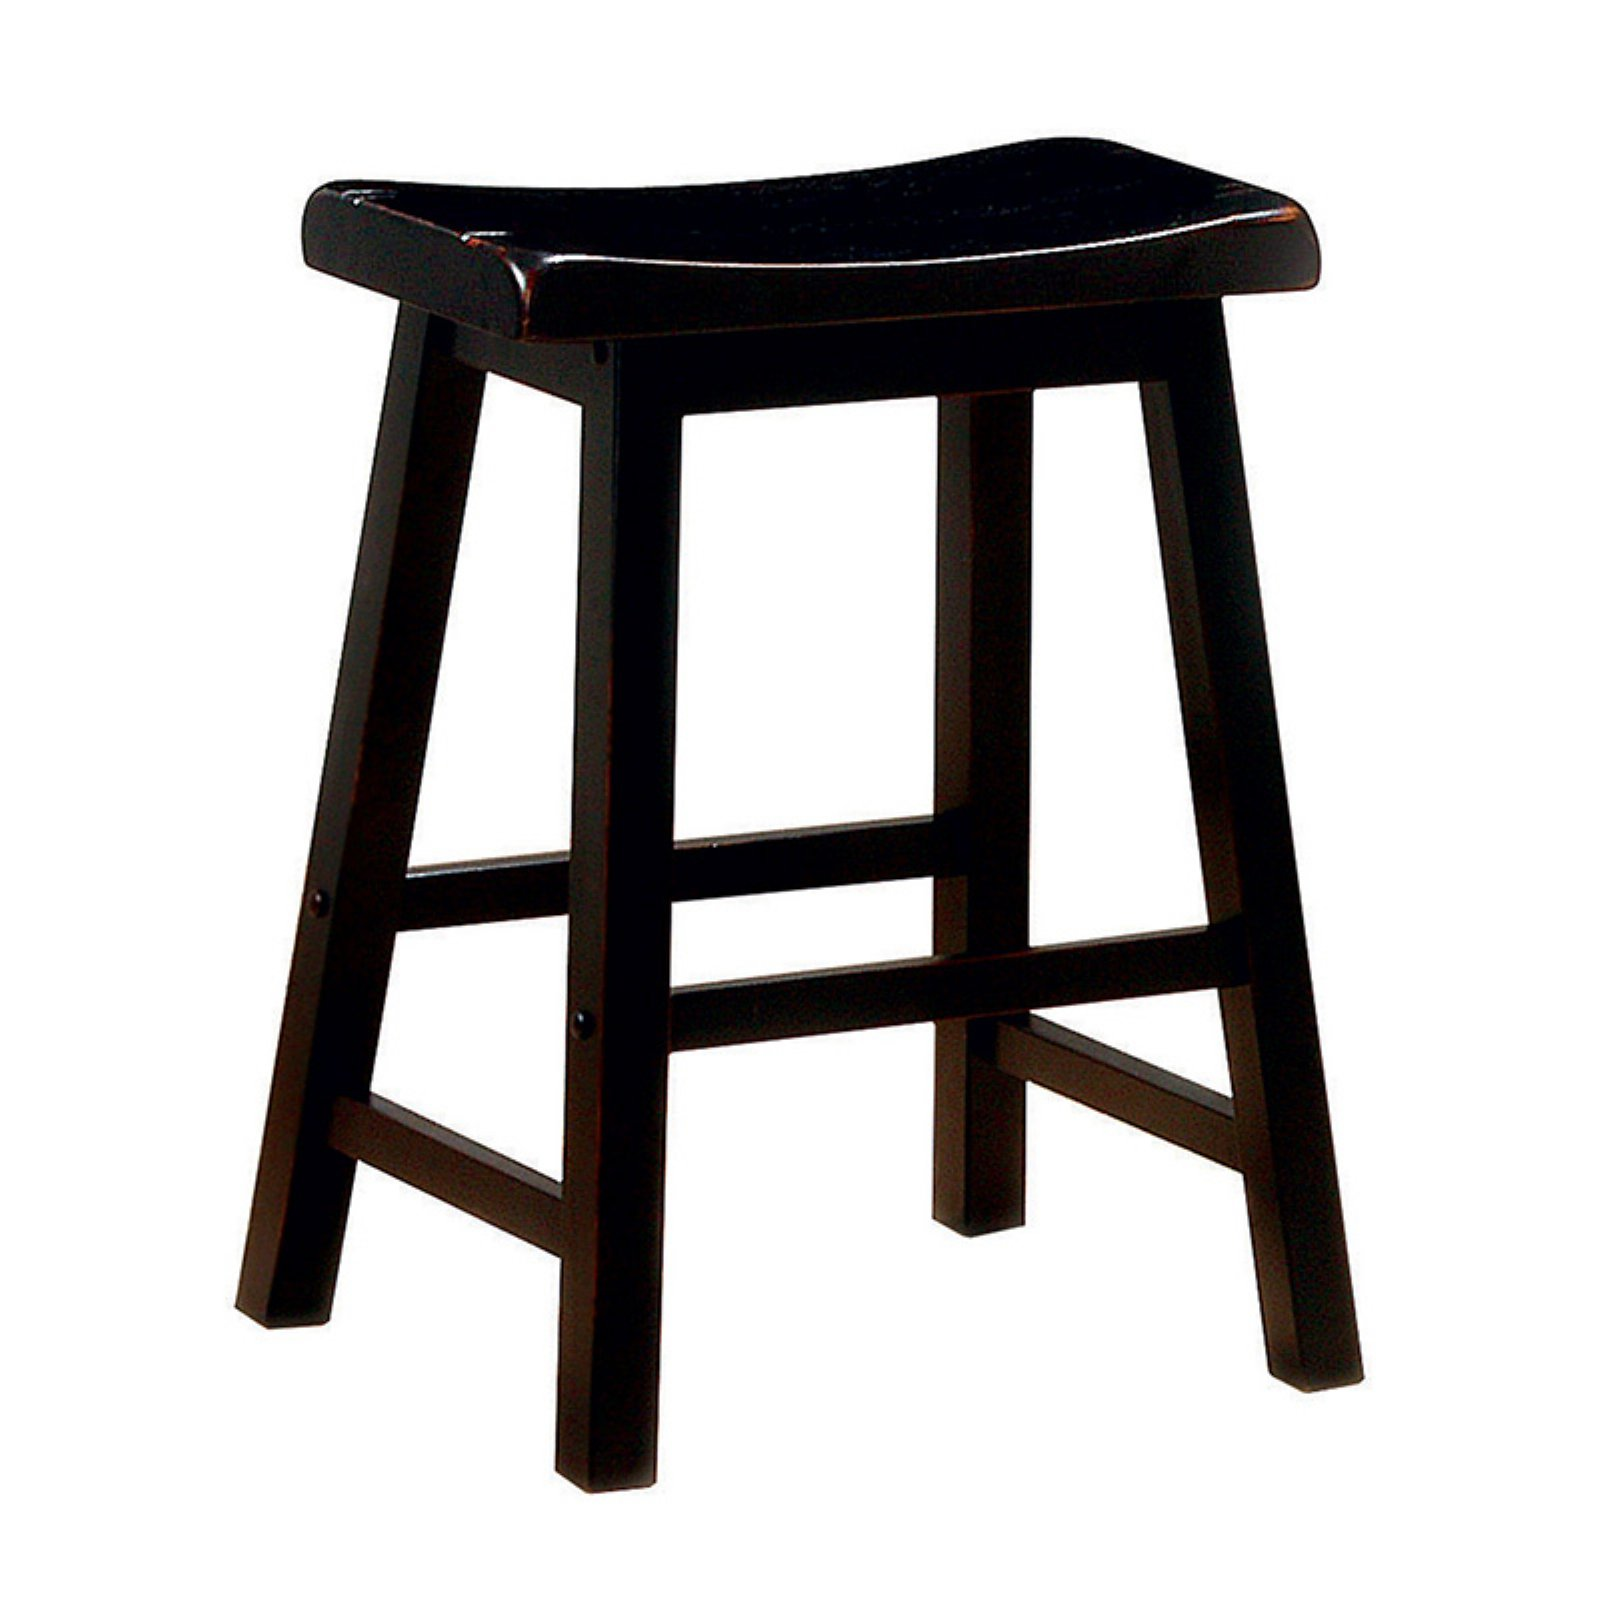 Coaster Company 24 in. Saddle Counter Height Stool, Black (Set of 2)